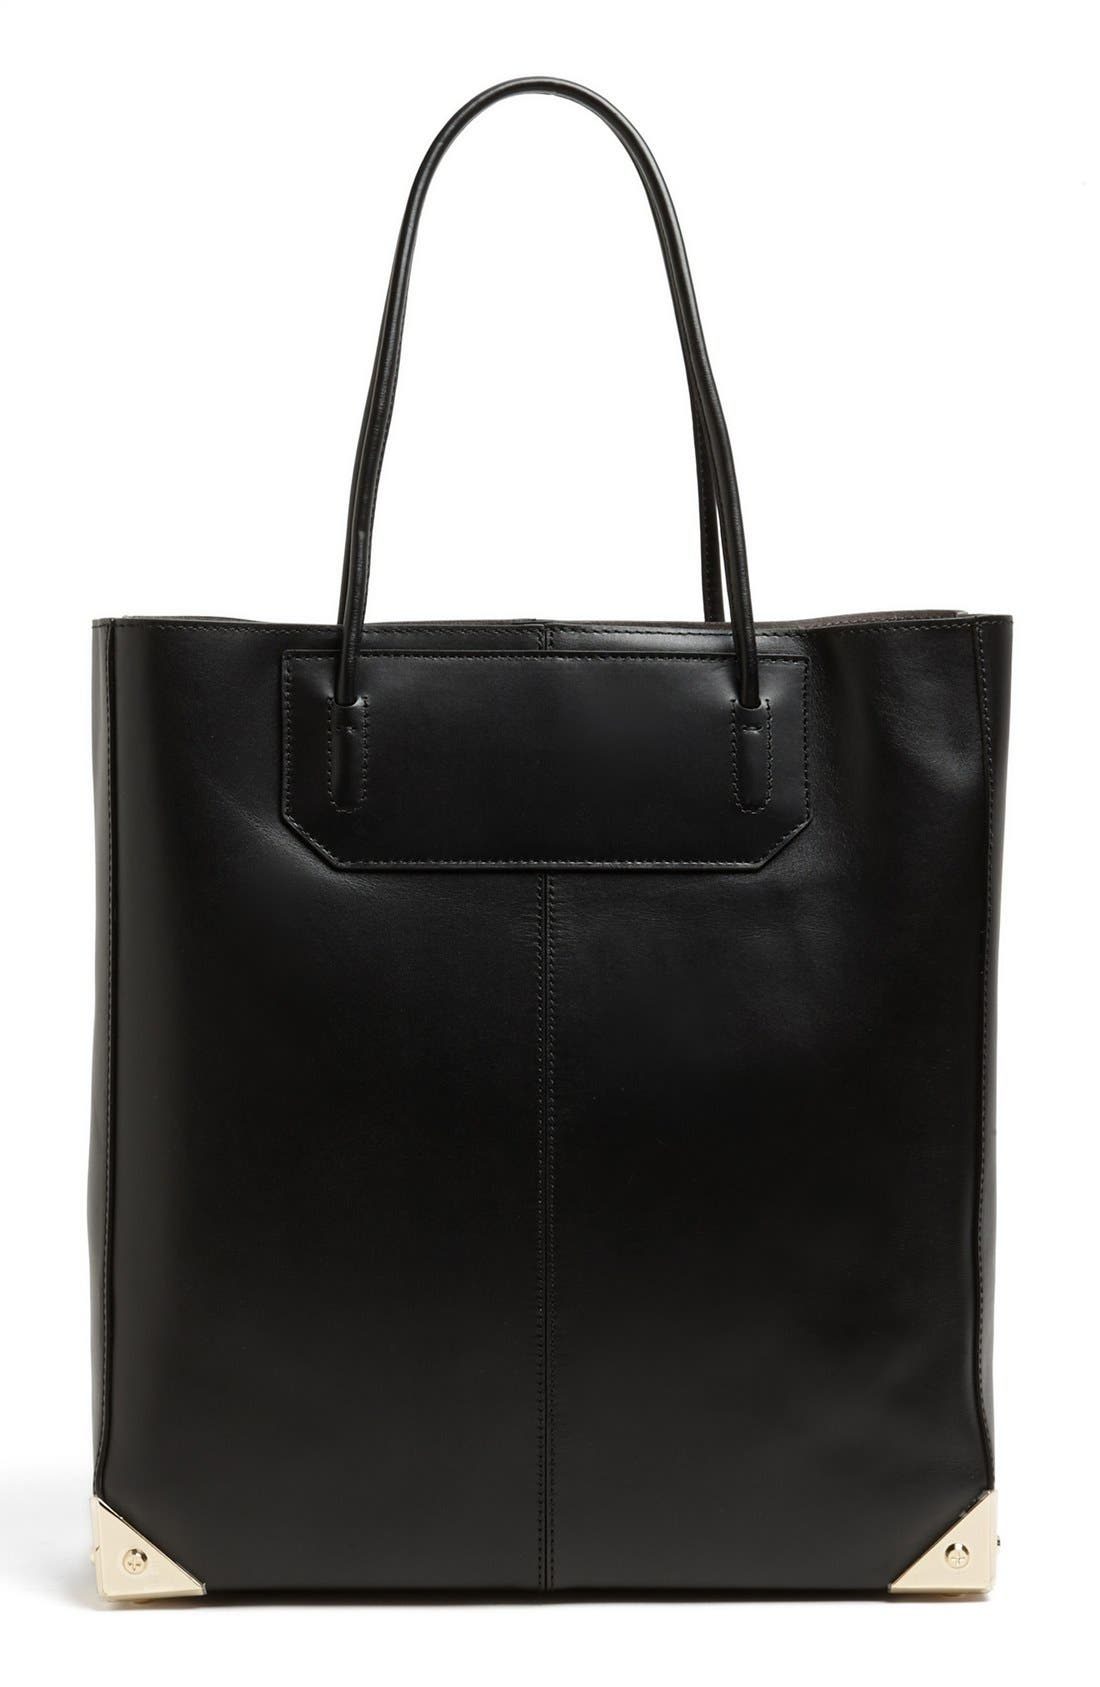 Alternate Image 1 Selected - Alexander Wang 'Prisma' Leather Tote